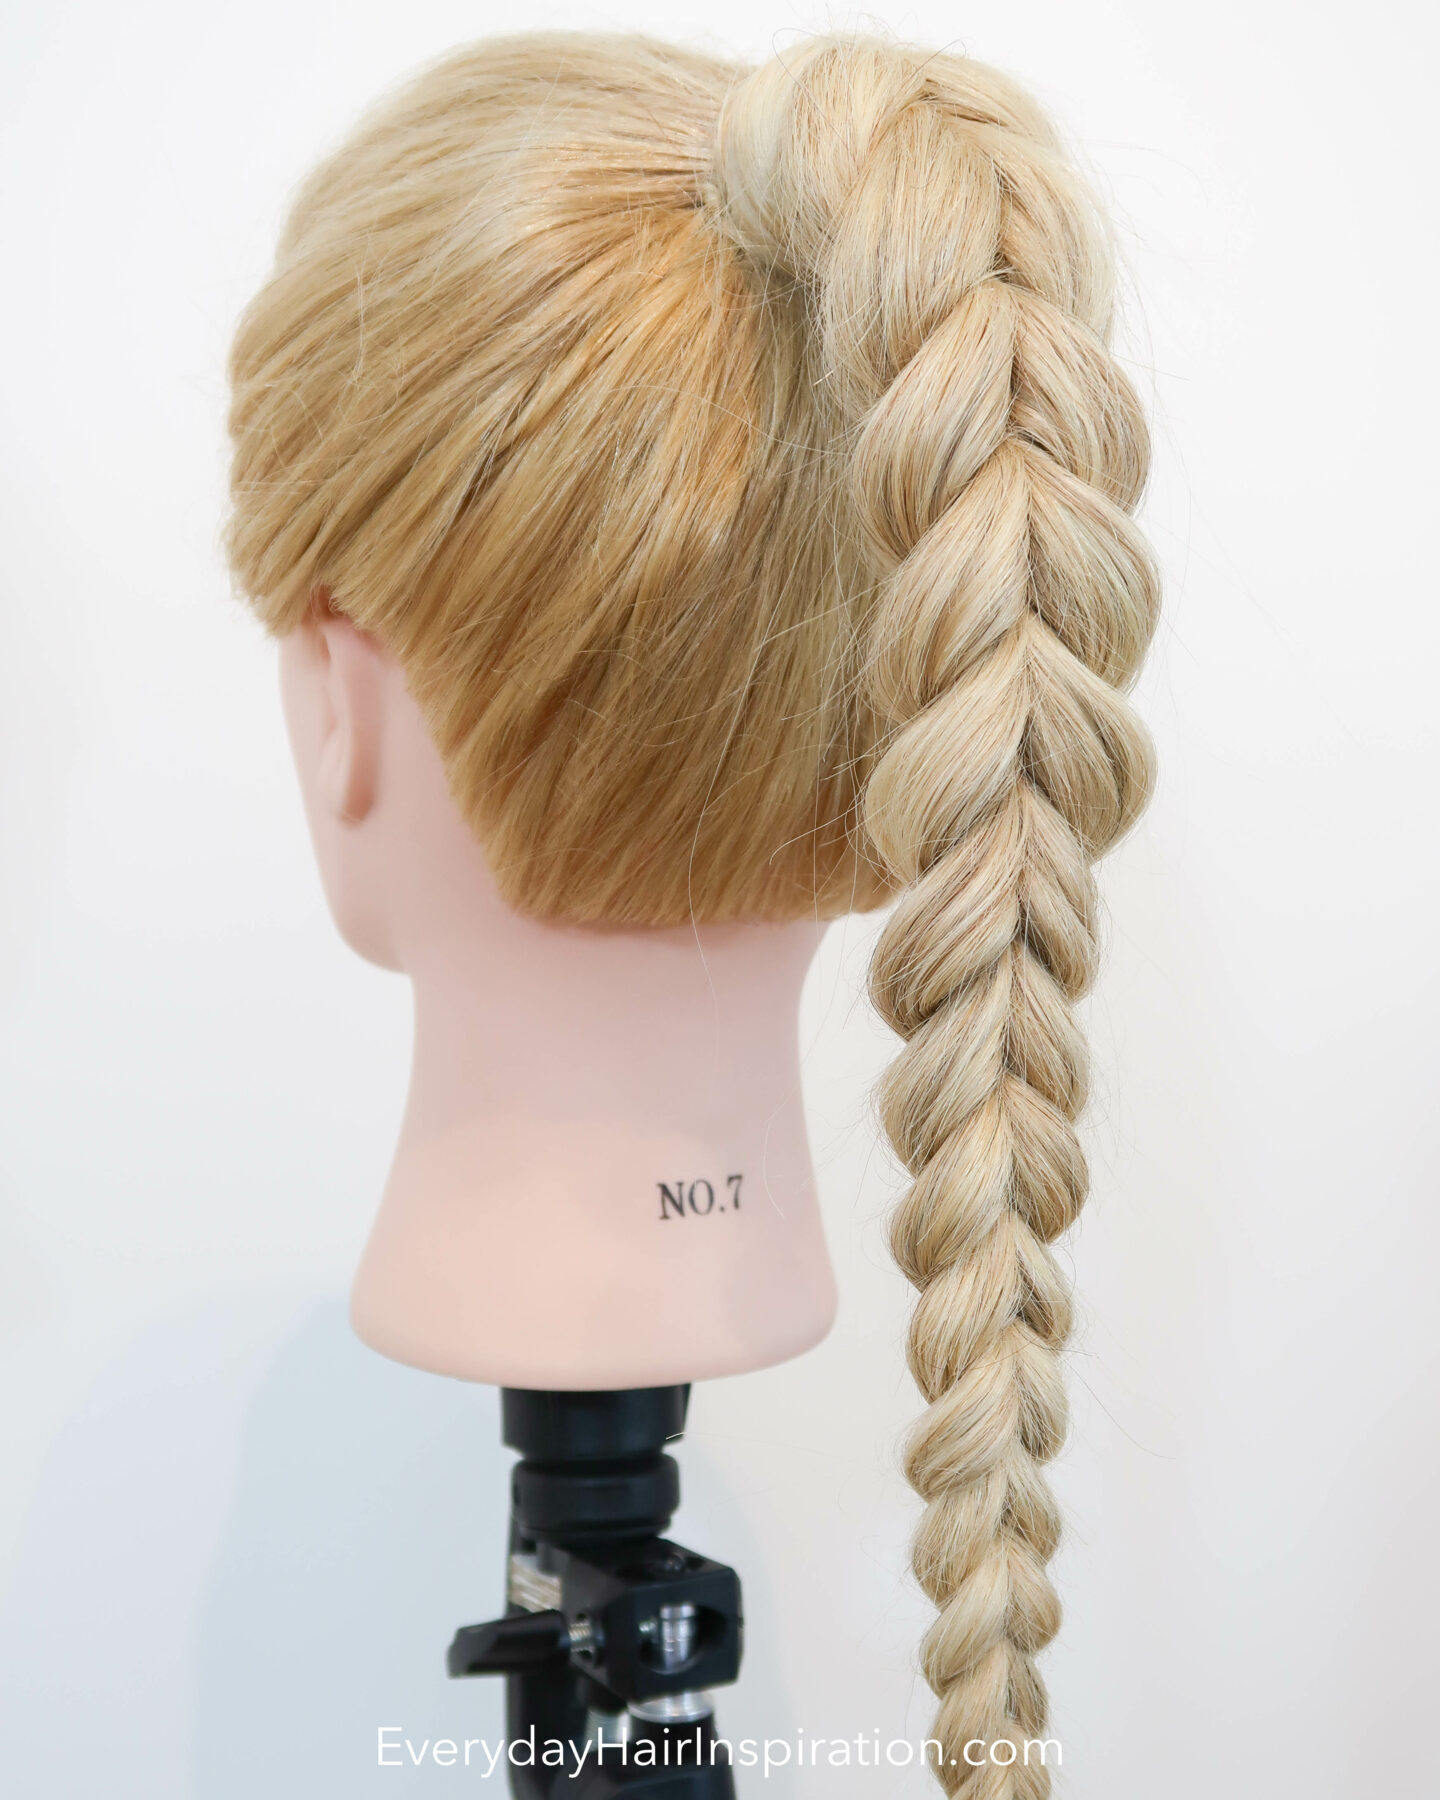 Blonde hairdresser doll seen from the back at an angle with a pull through braid in a high ponytail.